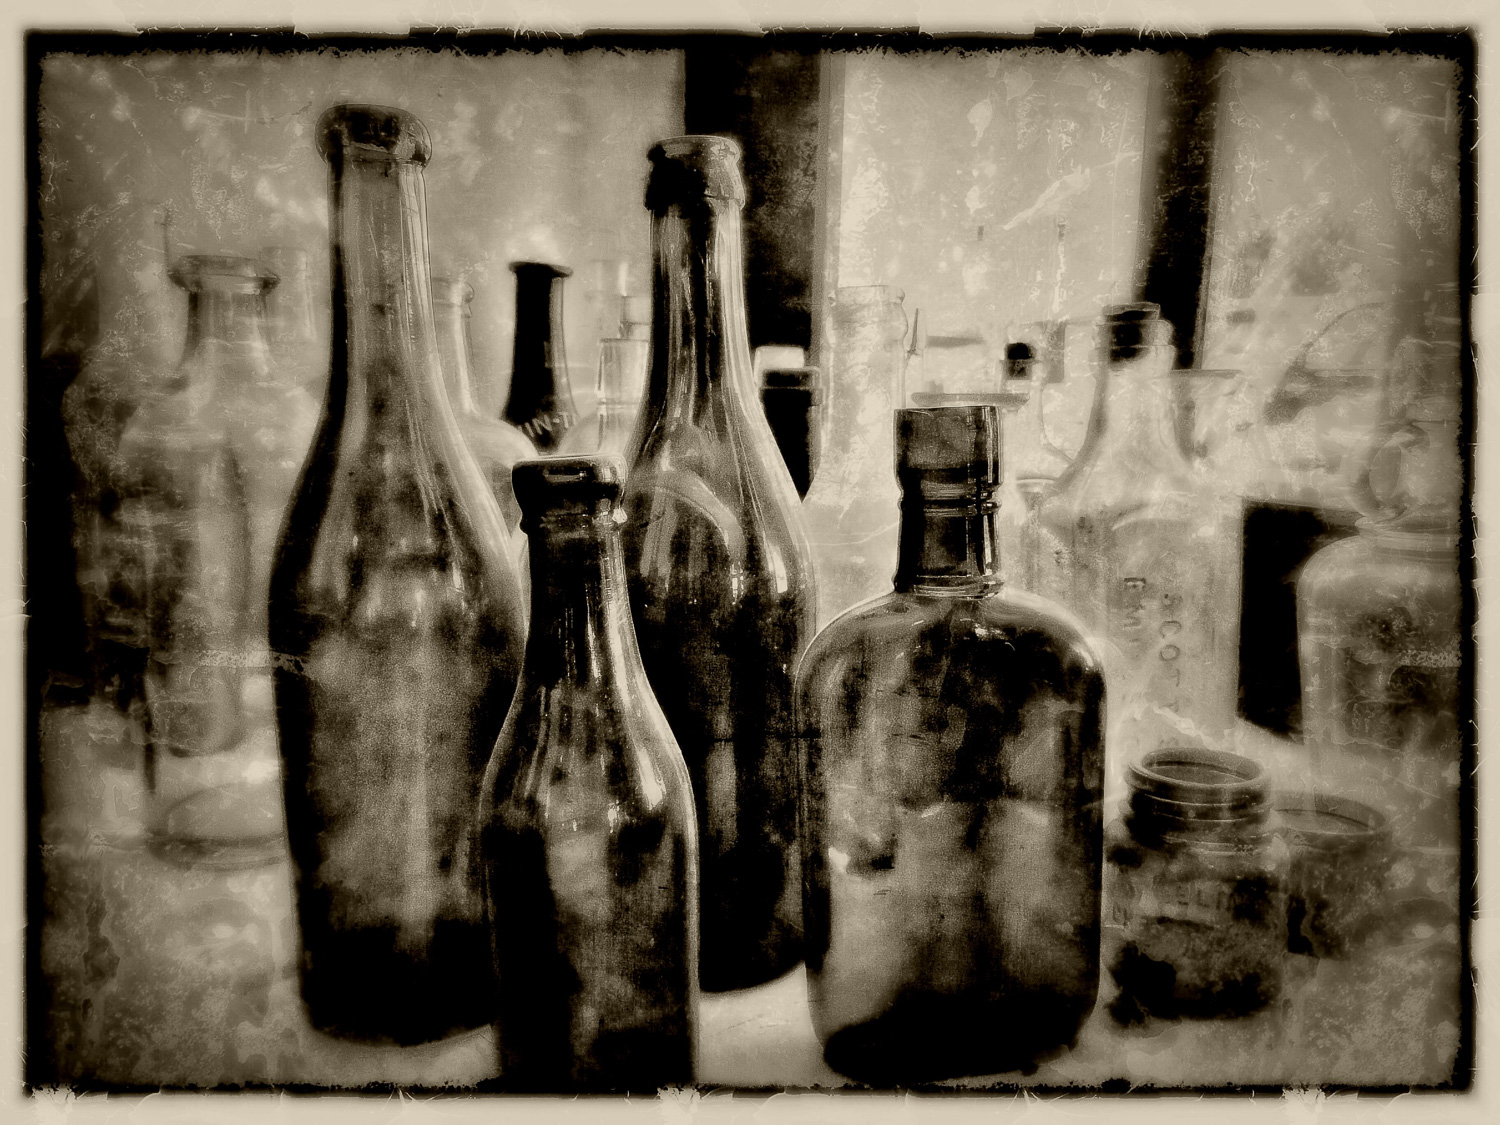 bottles with faded edit